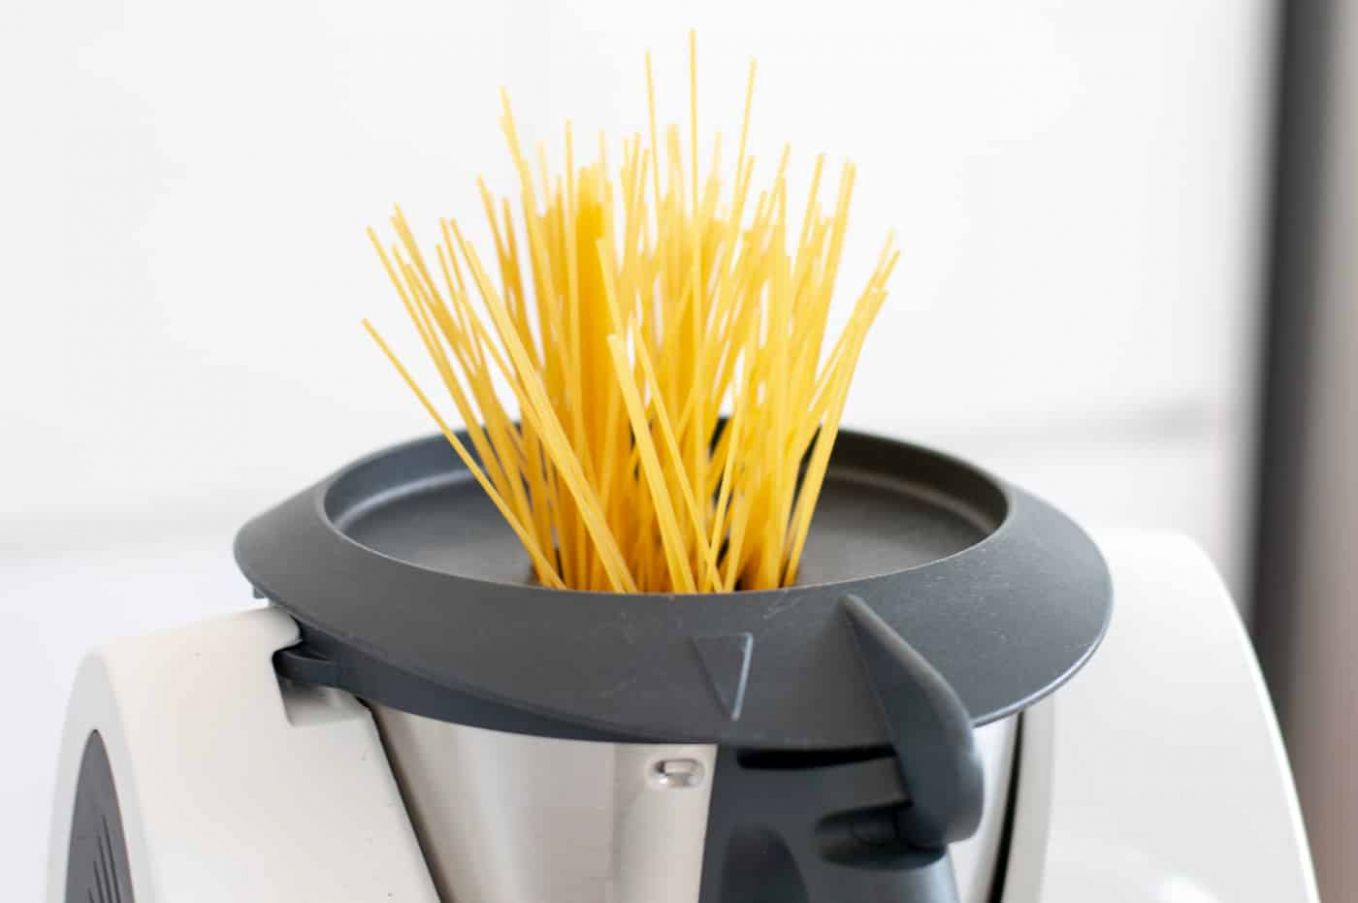 Cooking Pasta in the Thermomix